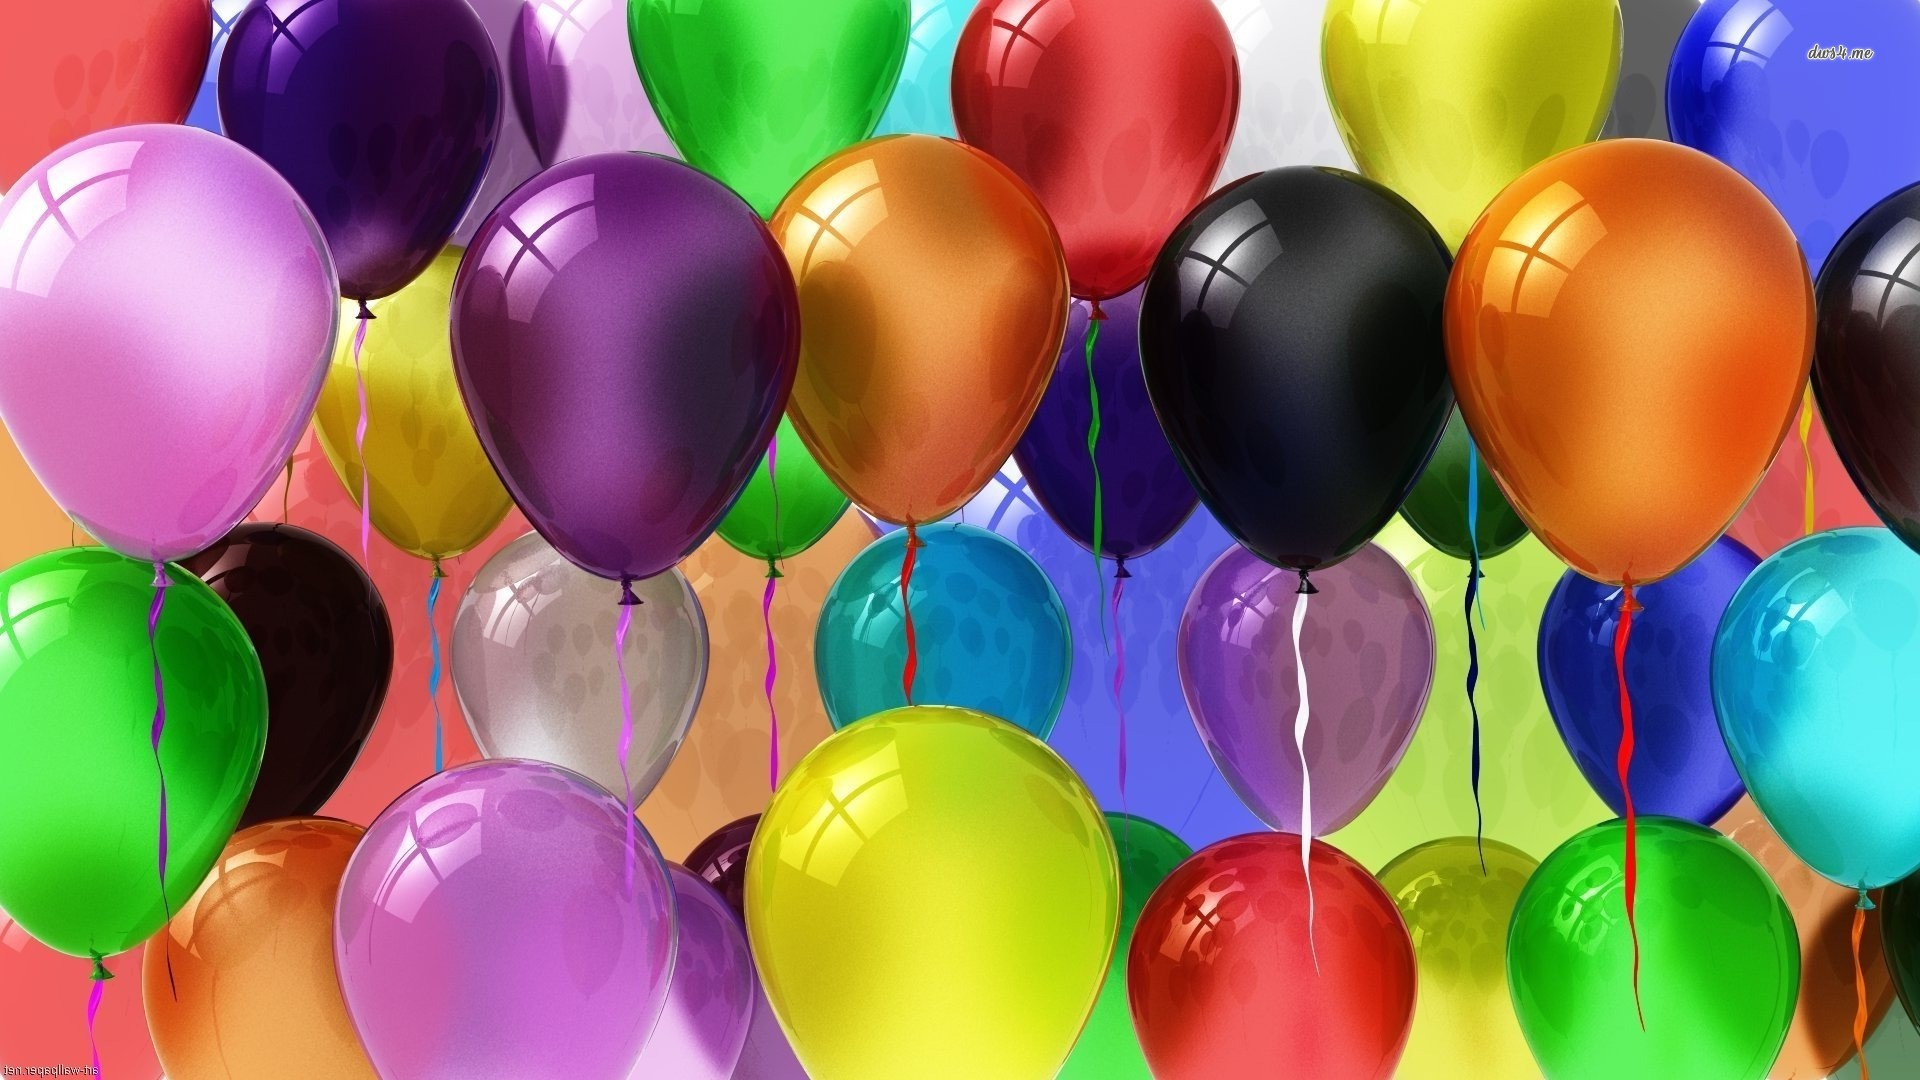 10824-colorful-balloons-1920x1080-digital-art-wallpaper